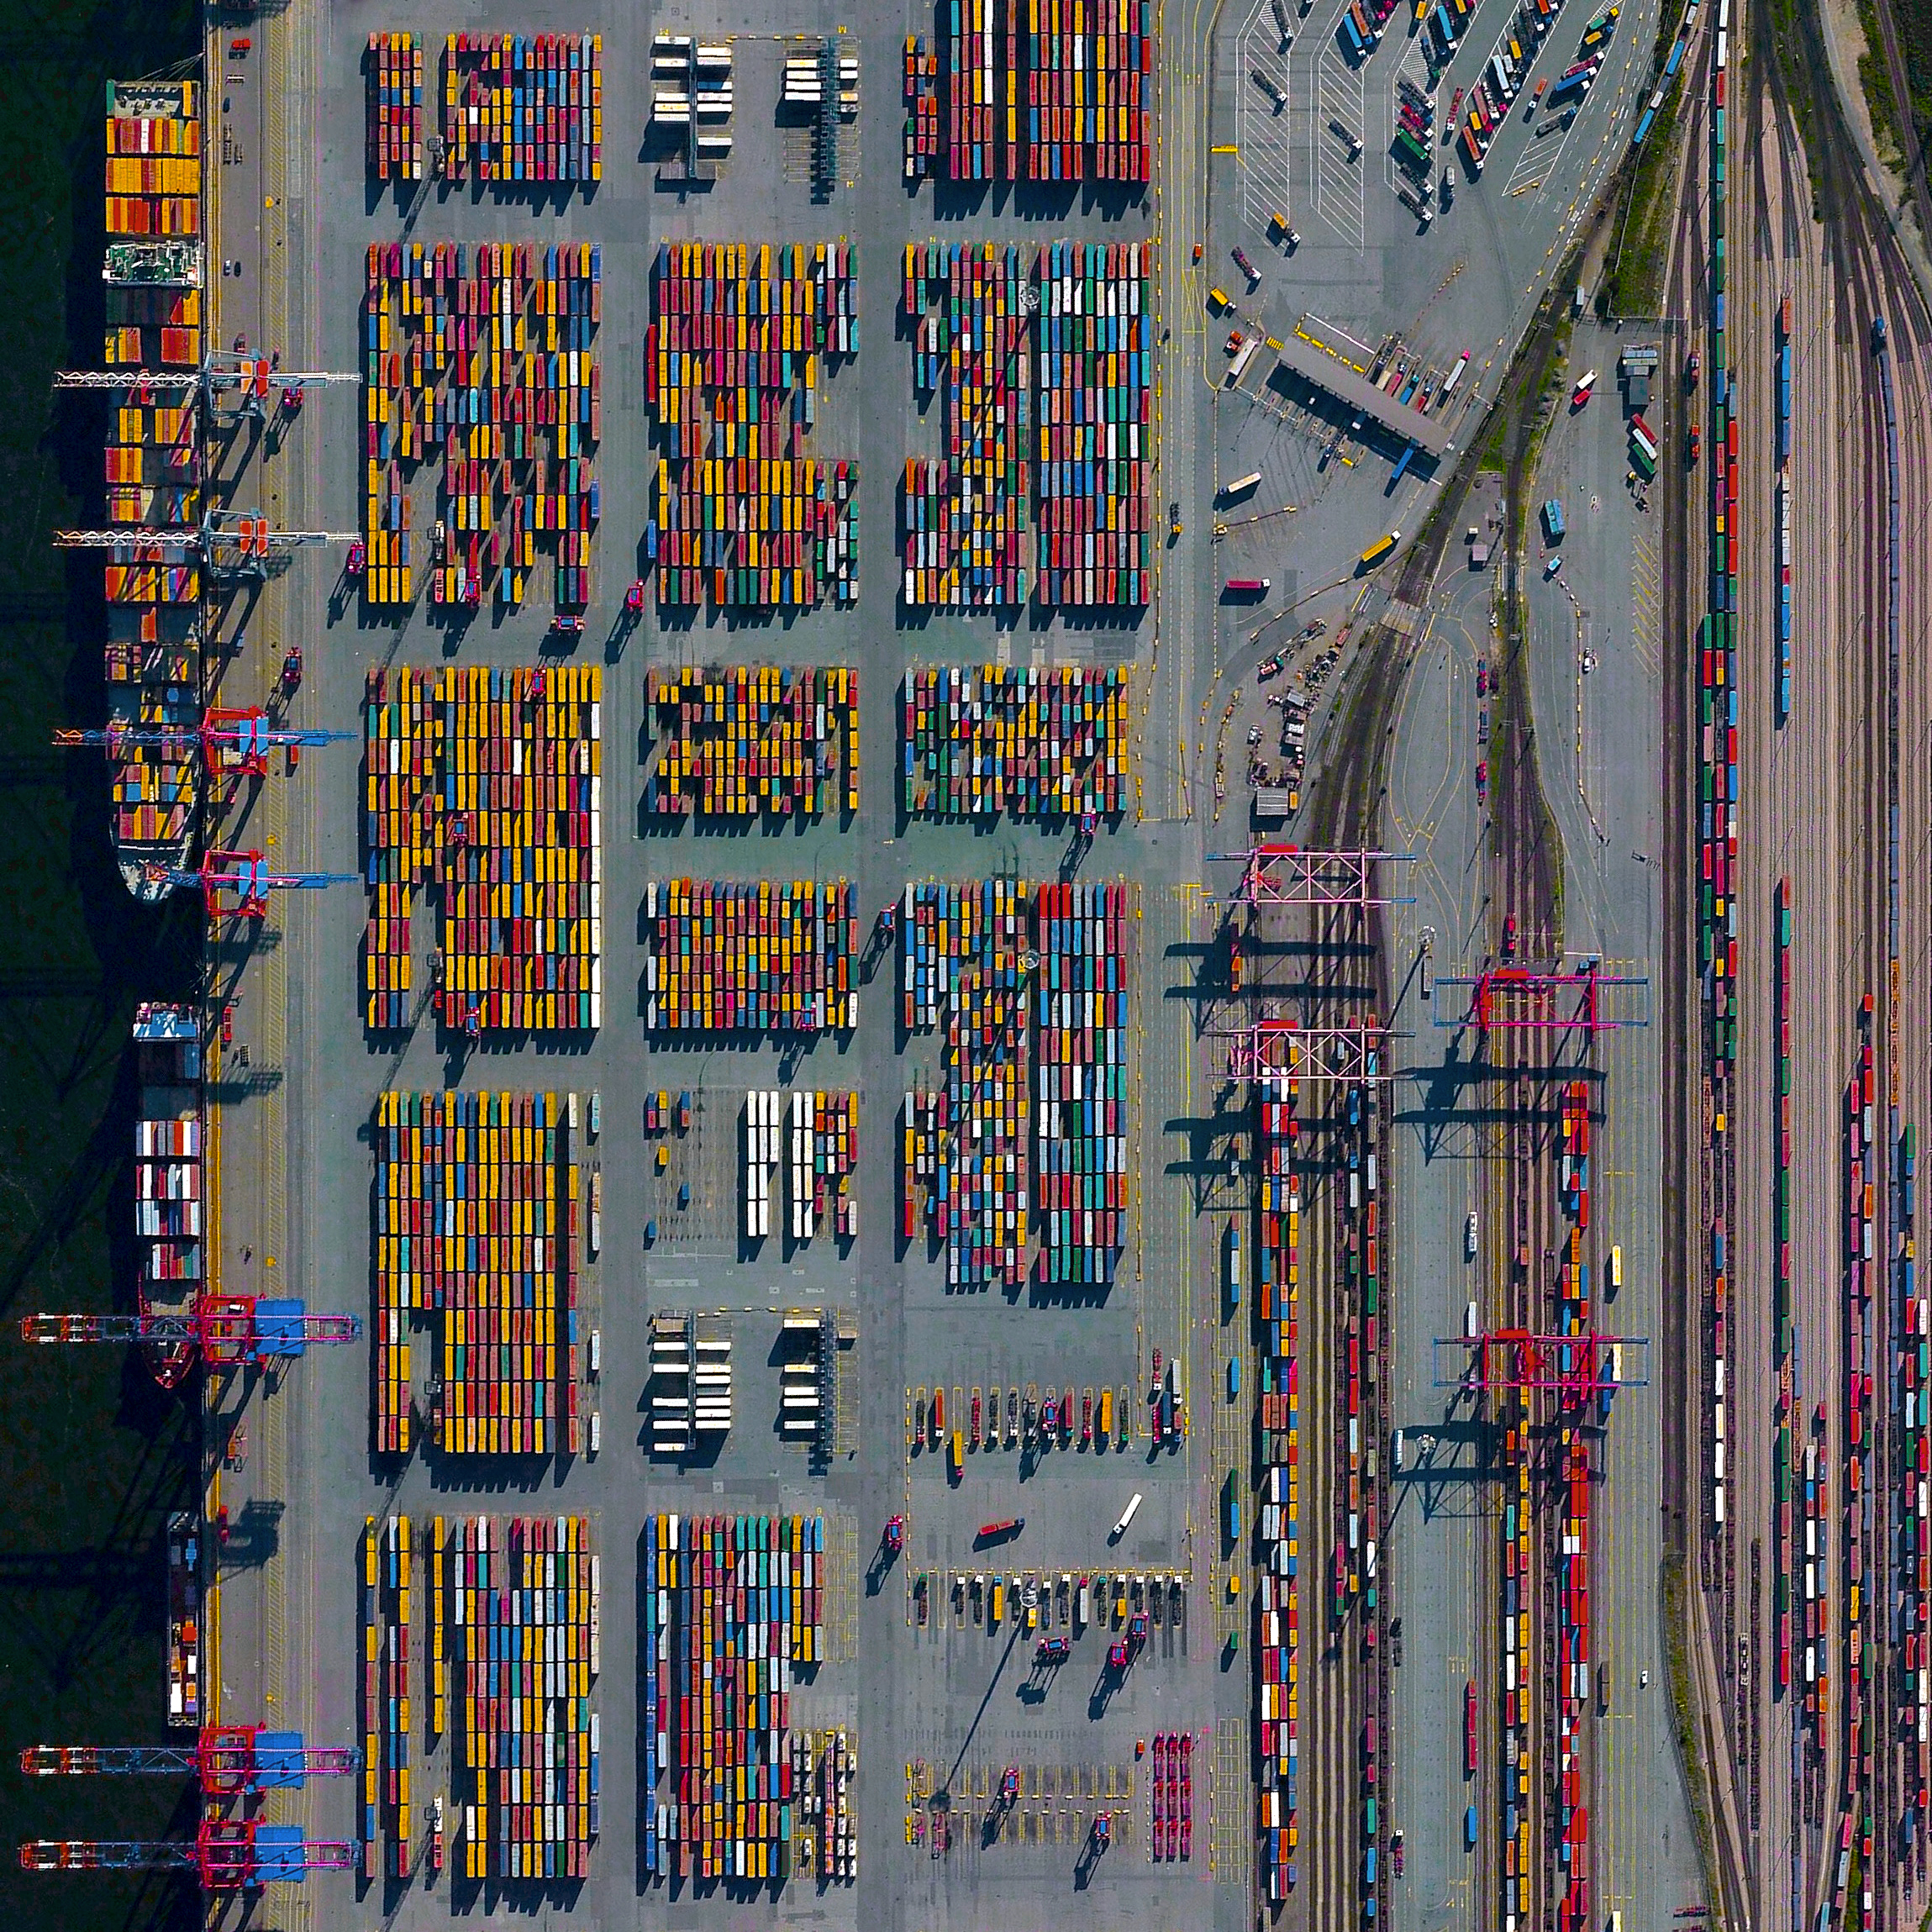 """The Port of Hamburg - known as Germany's """"Gateway to the World"""" - is located on the Elbe River in Hamburg. On an average day, the facility is accessed by 28 ships, 200 freight trains, and 5,000 trucks. In total, the port moves 132.3 million tonnes of cargo each year - that's roughly 1/3 of the mass of all living human beings.  53.532581146°, 9.916544334°"""